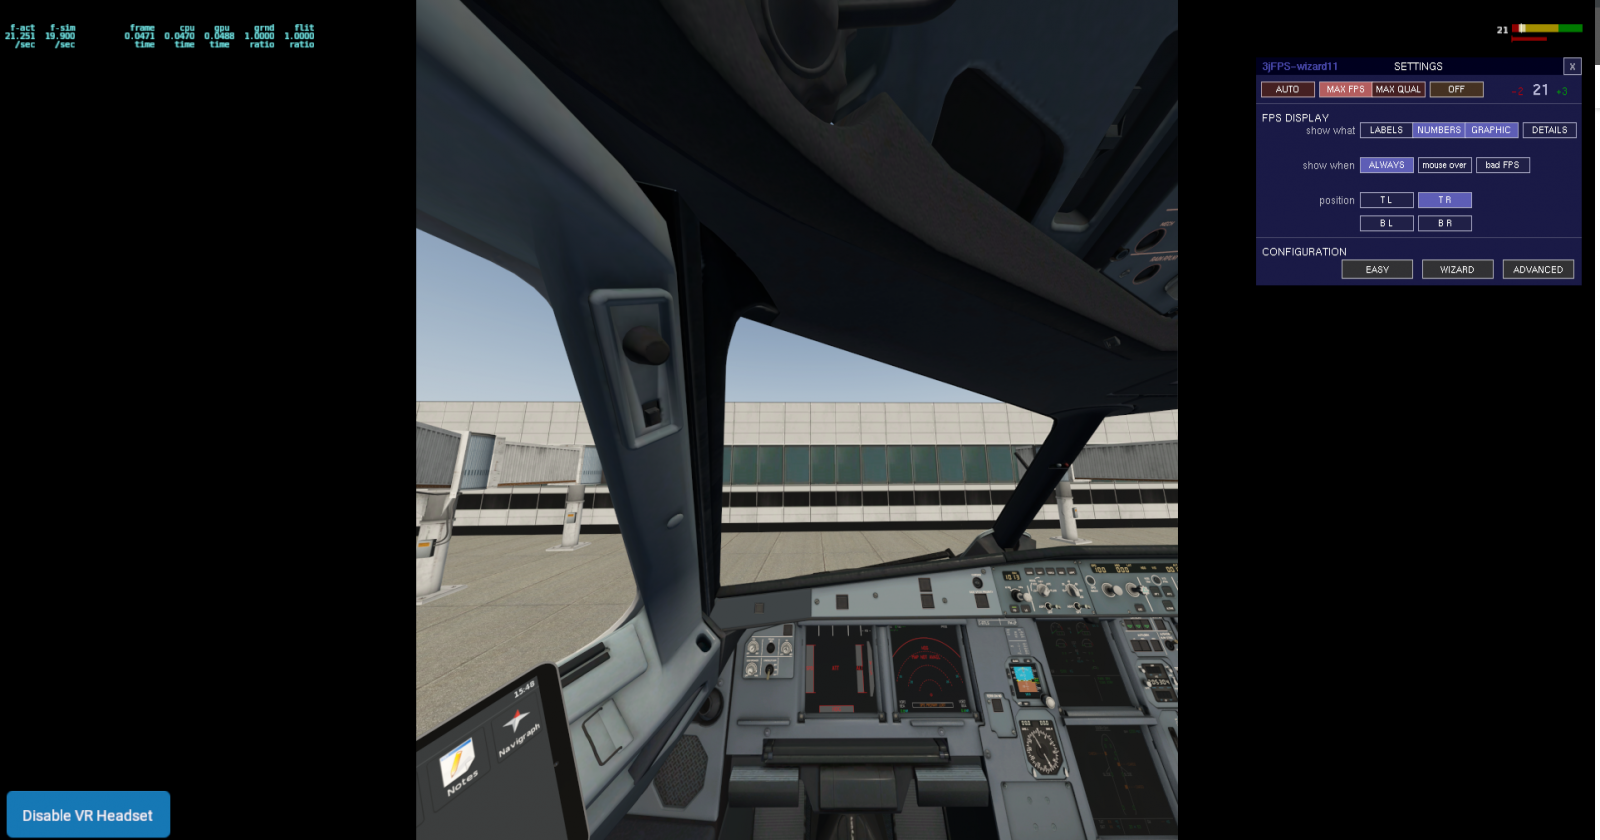 Confused by HDR FPS increase - VR in X-Plane 11 - X-Plane